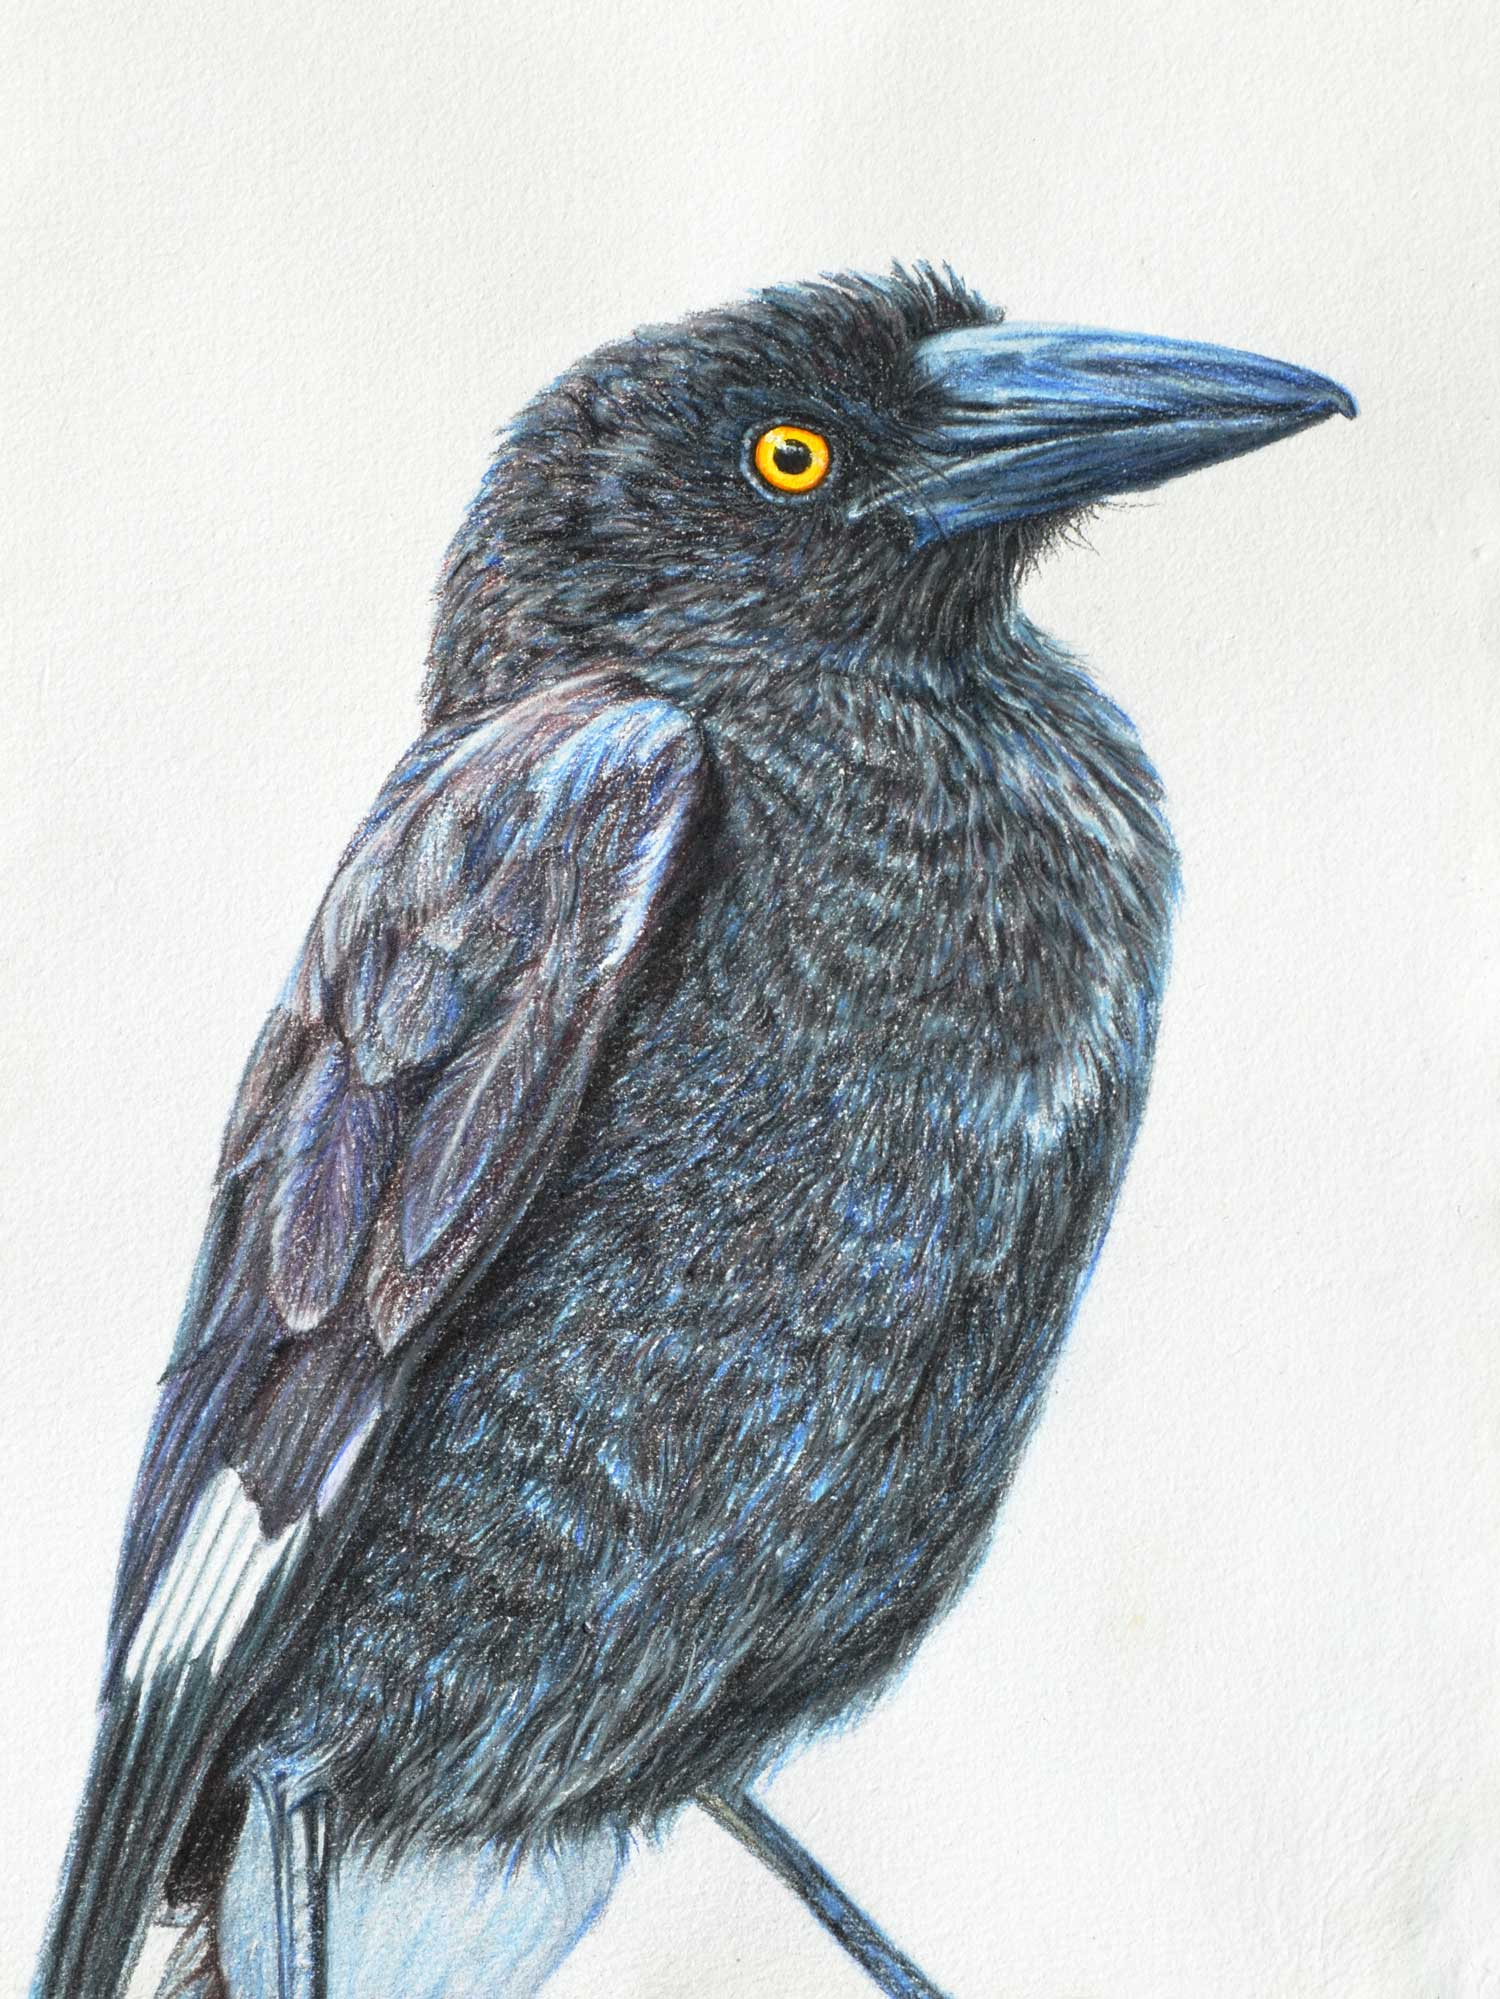 Young Currawong  41 x 31 CM, PASTEL ON HANDMADE PAPER  Available as a limited edition print  $750